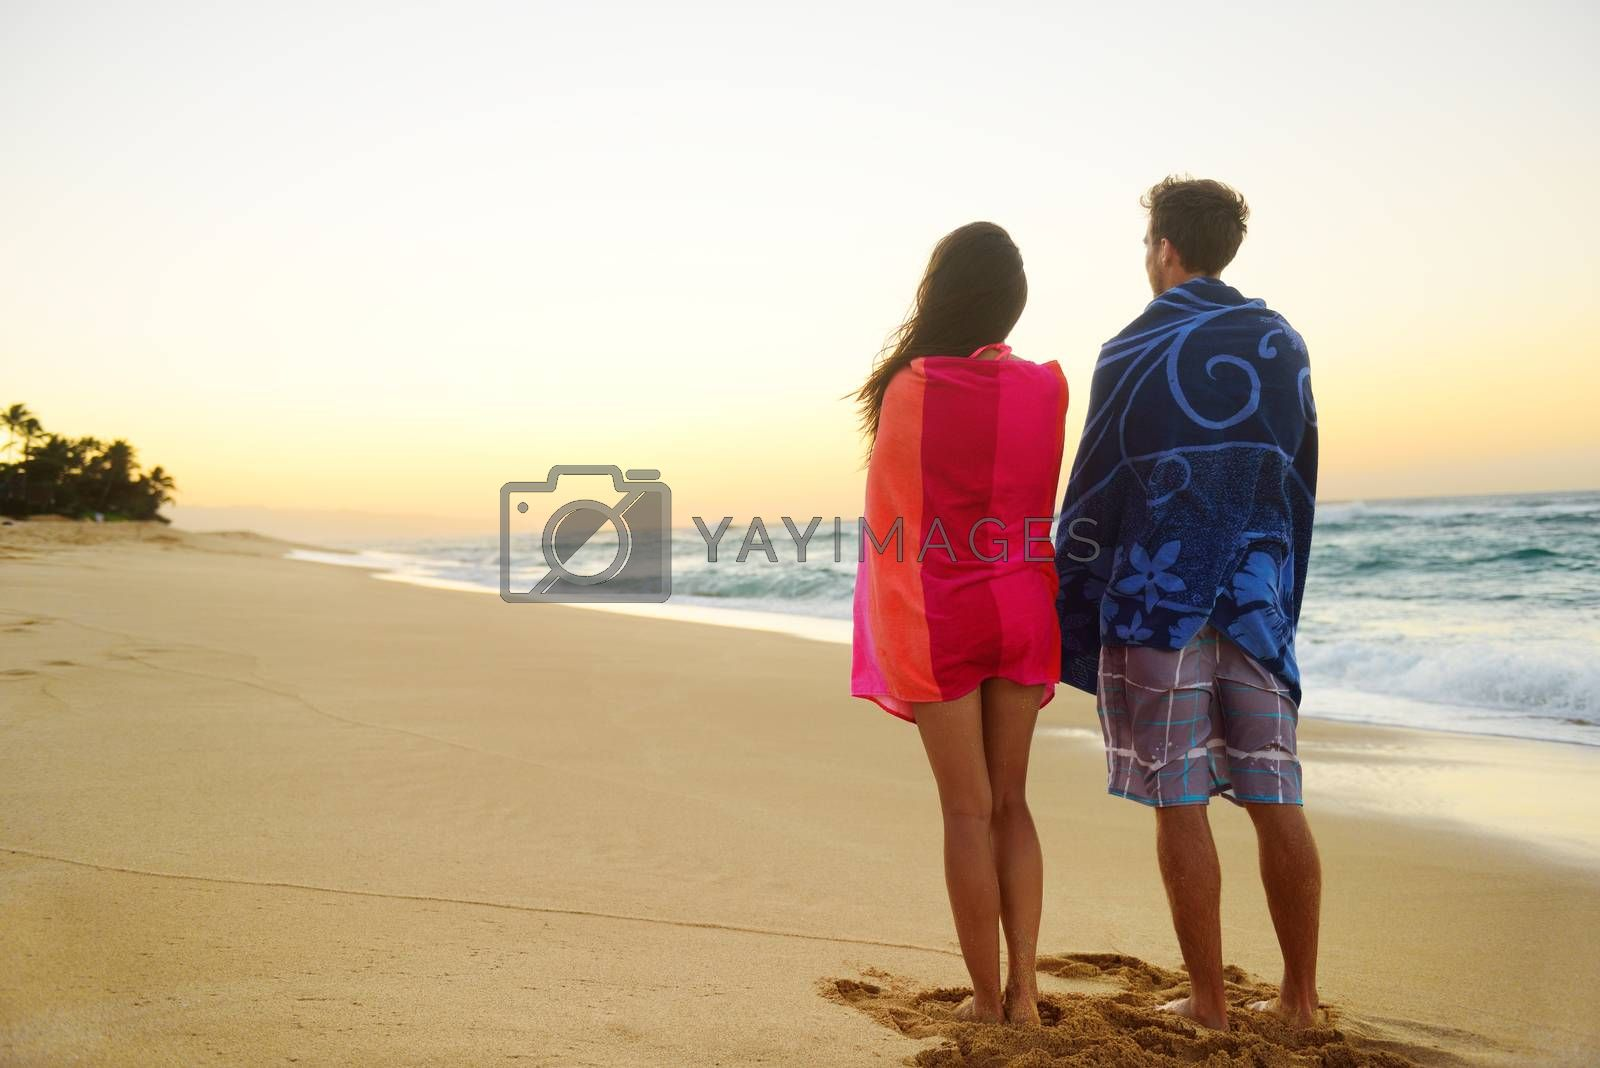 Couple standing in beach sand, towels over shoulders enjoying ocean sunset during travel holidays getaway vacation. Mixed race couple, asian woman, caucasian man.